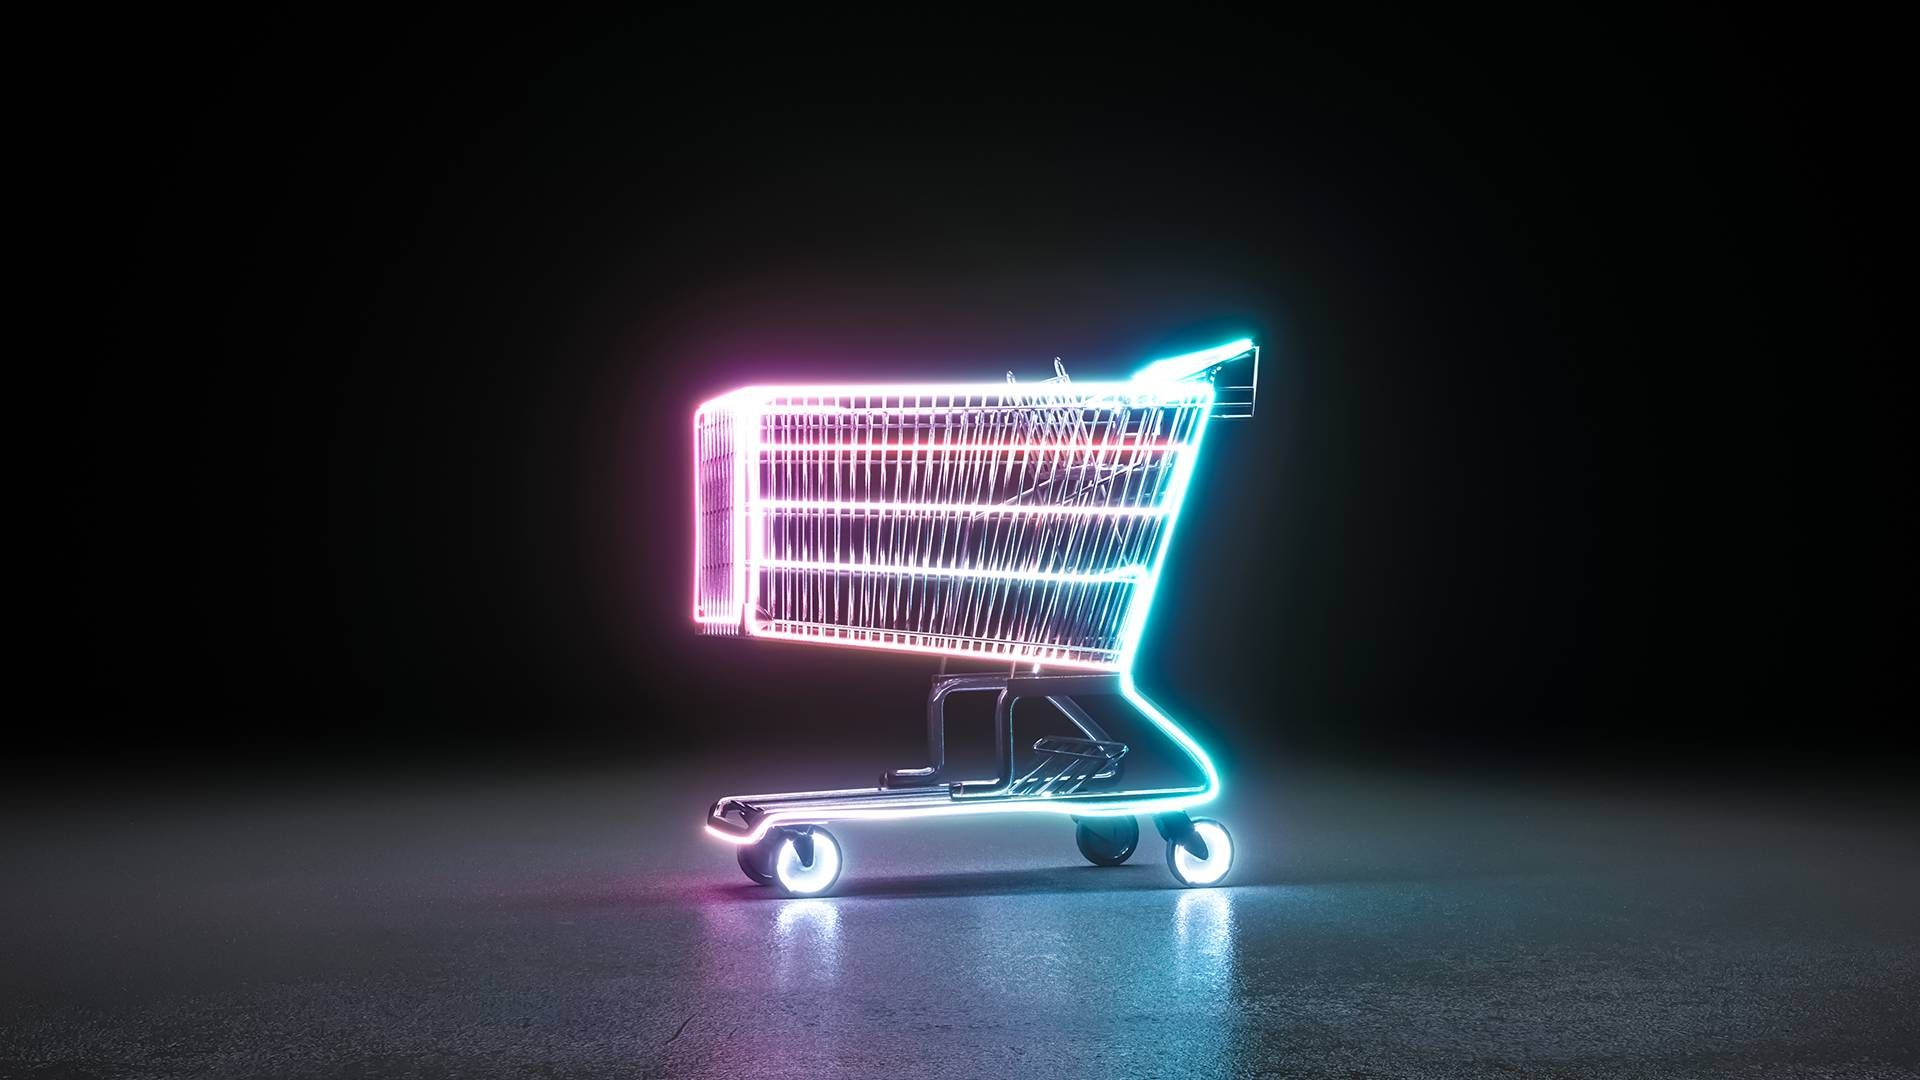 shopping cart representing consumer. rewire pbs money rights as consumer